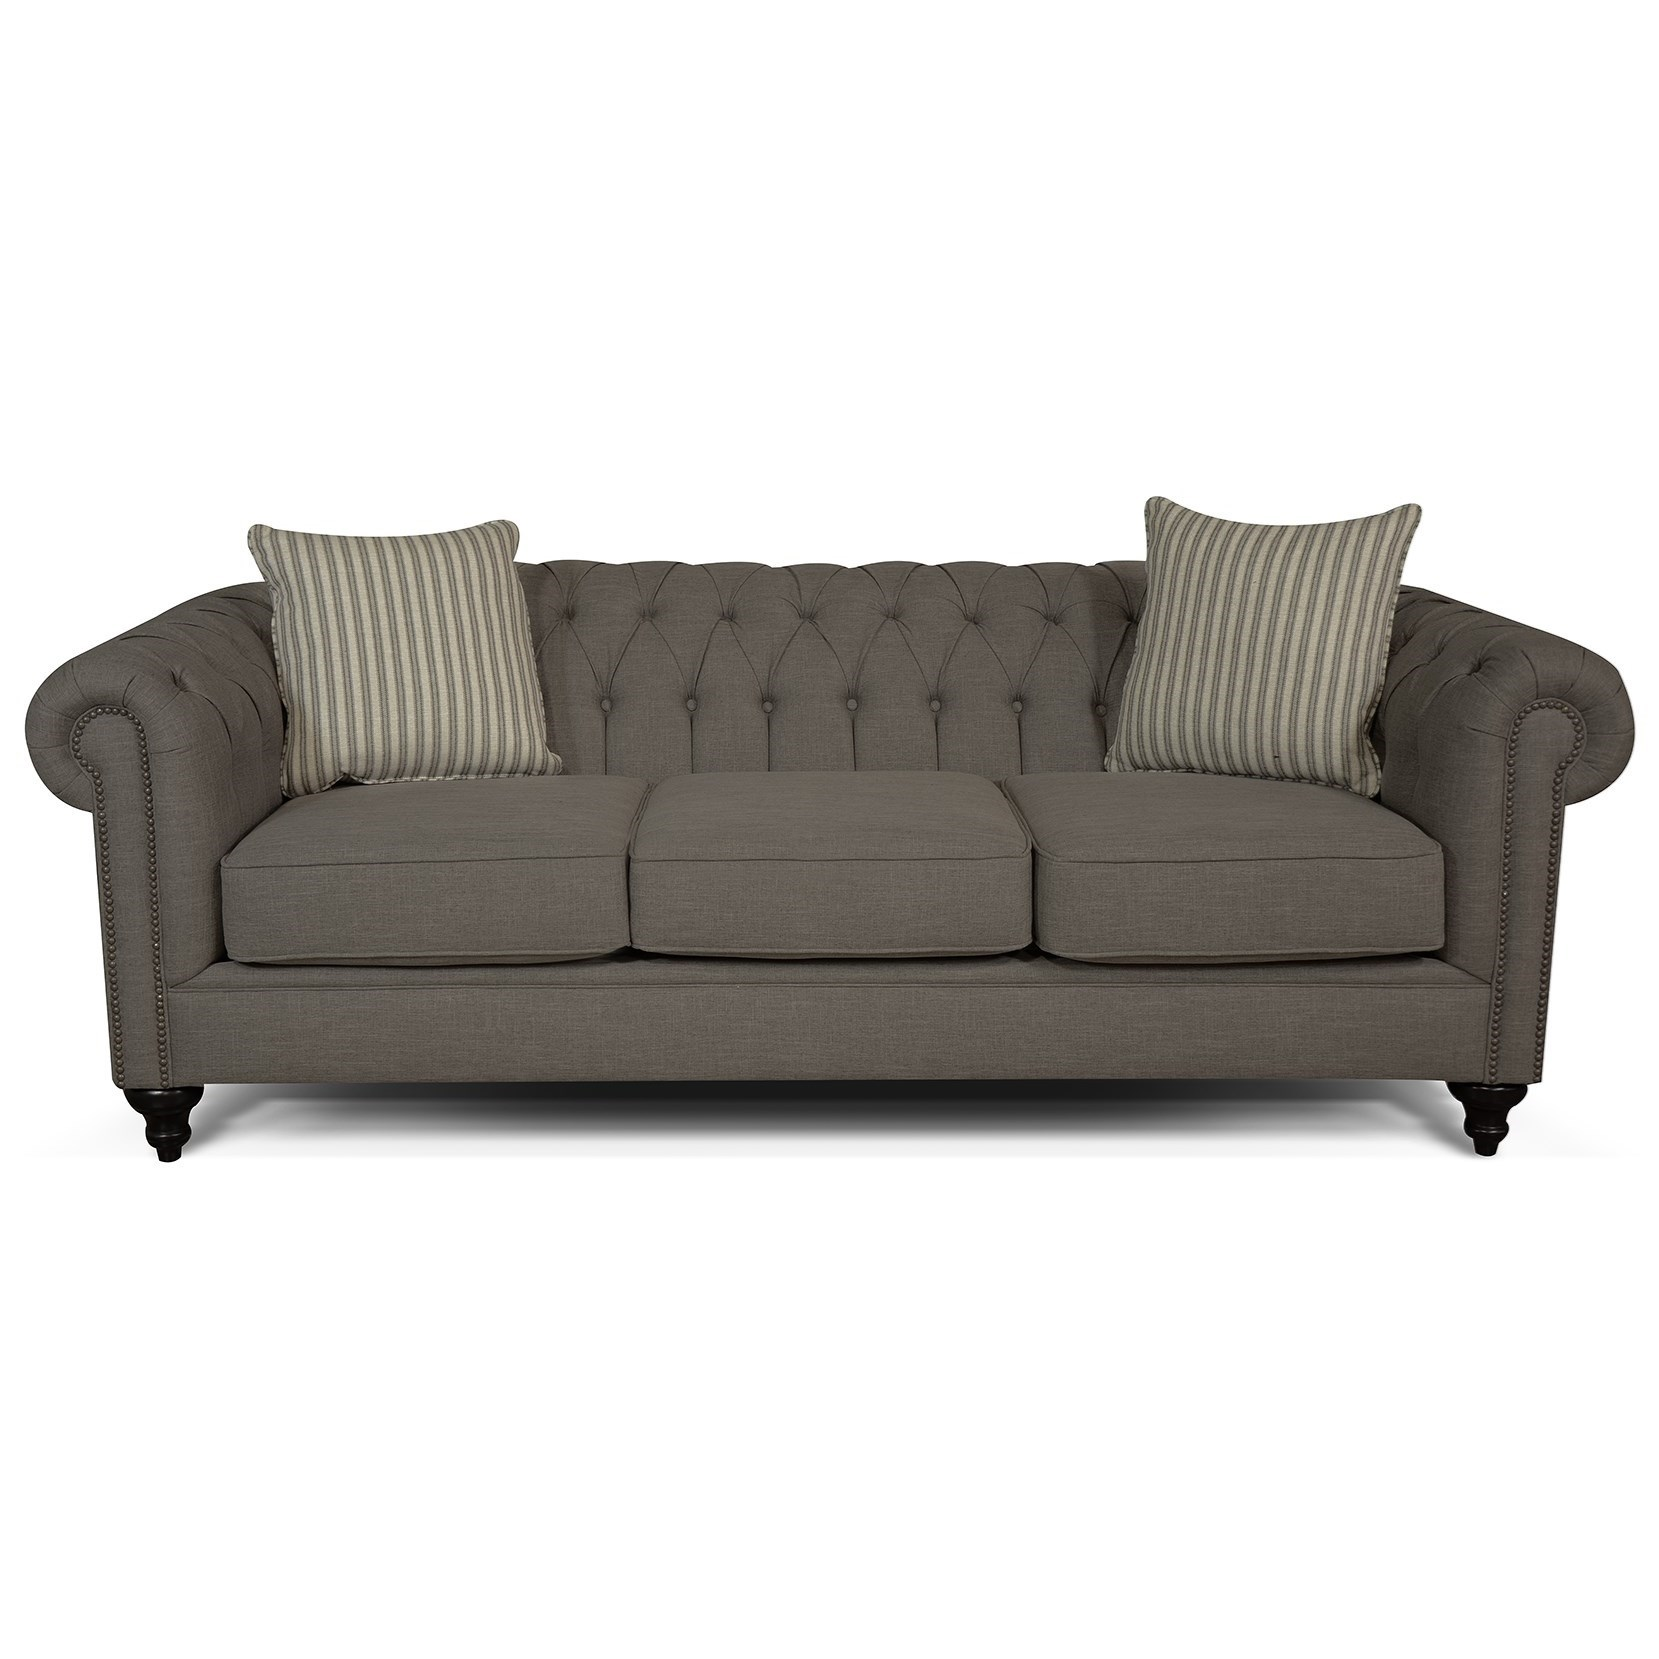 Ruby 4H00 Sofa by England at Virginia Furniture Market